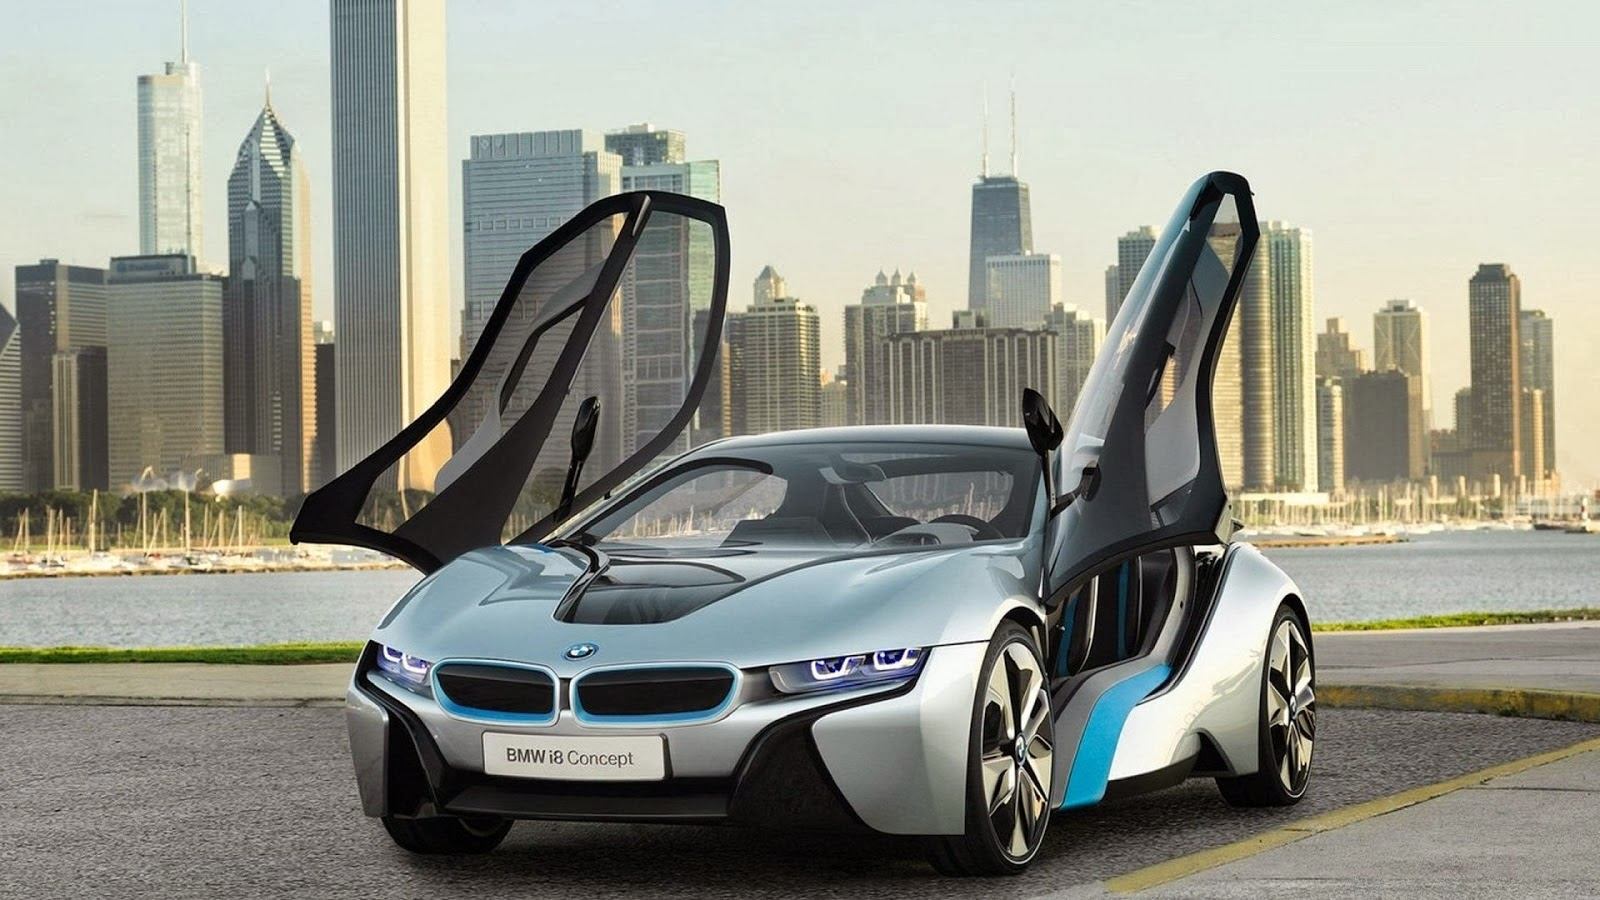 Hd Wallpapers Download Bmw I8 Cars 1080p Wallpaper For Mobile - Medium